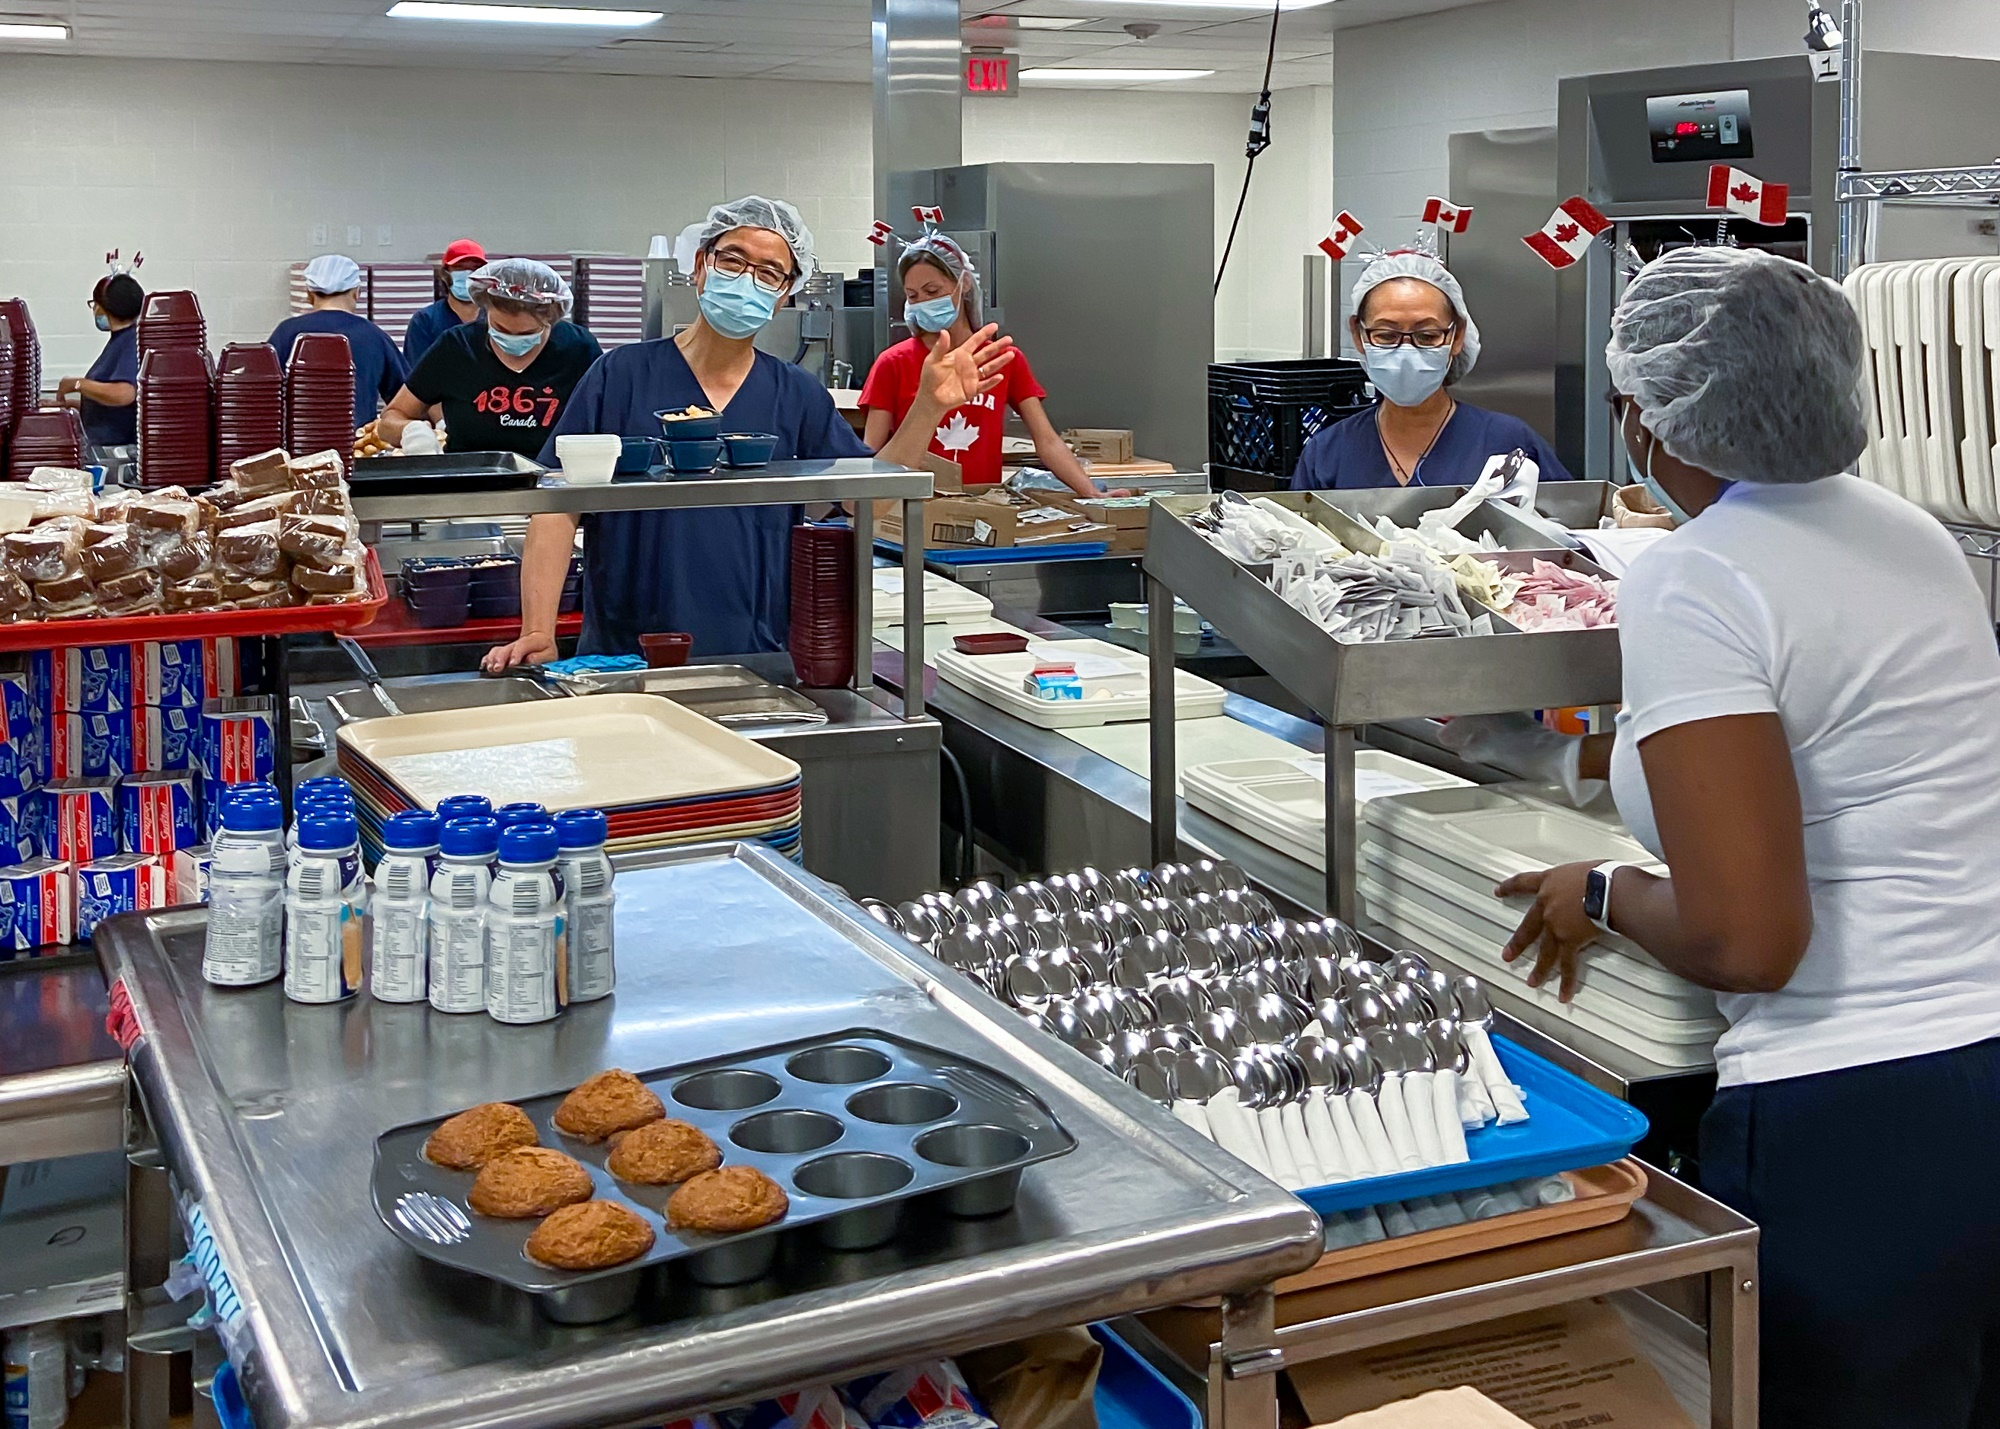 Employees in a large industrial kitchen working on assembling meal trays. They are wearing procedure masks and hair nets. Some have small Canadian flags sticking up from their hair.